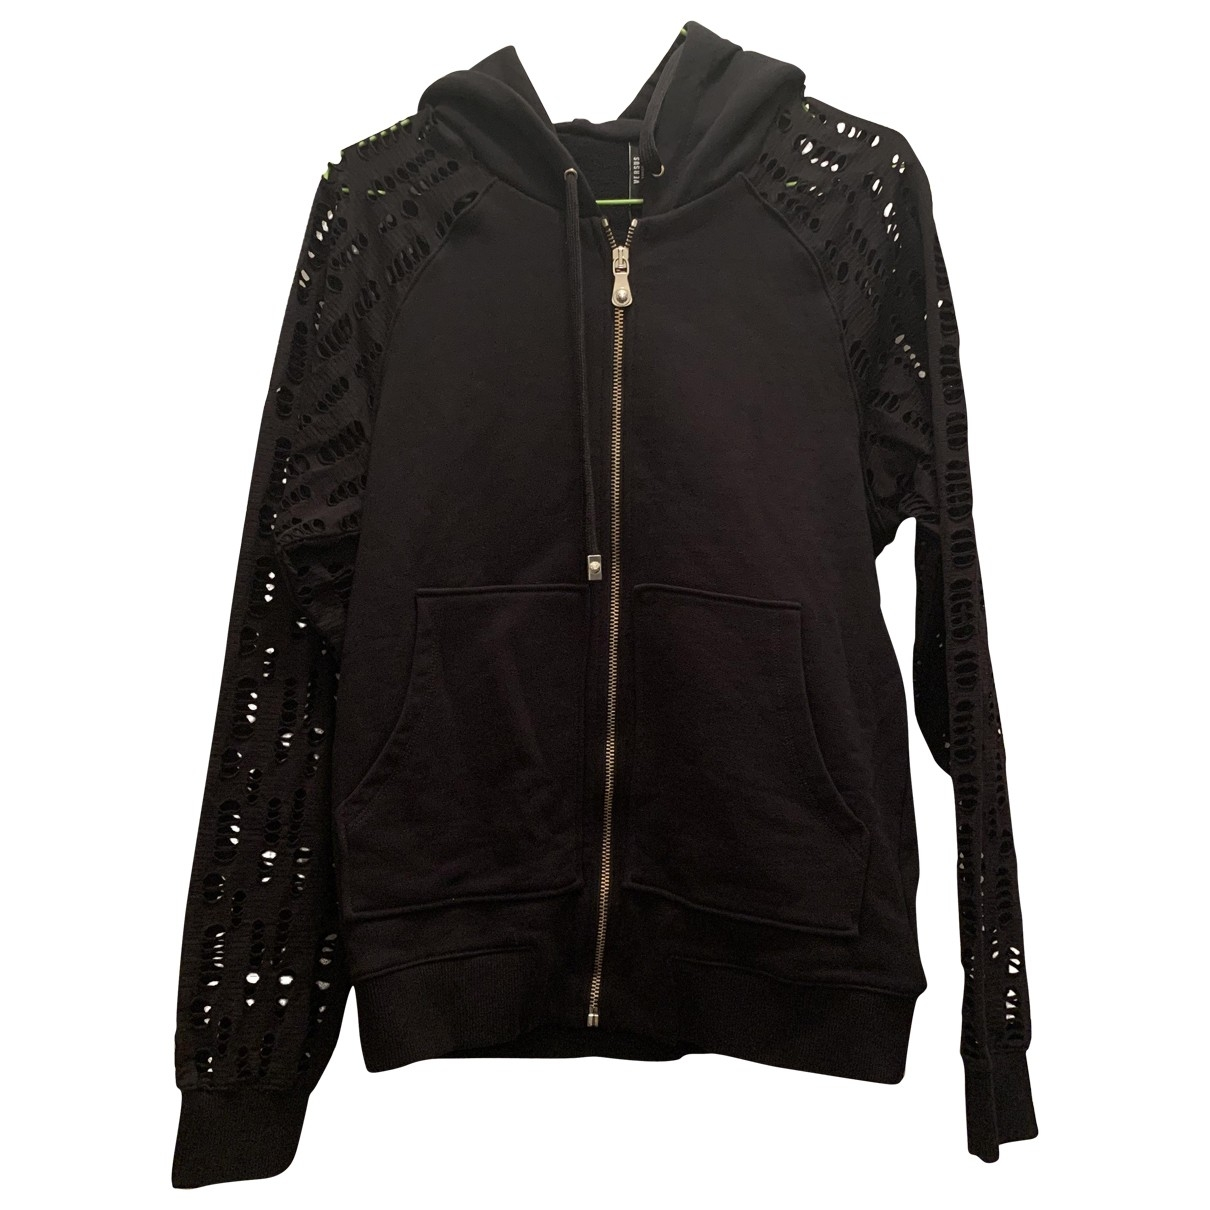 Versus \N Black Cotton jacket for Women S International